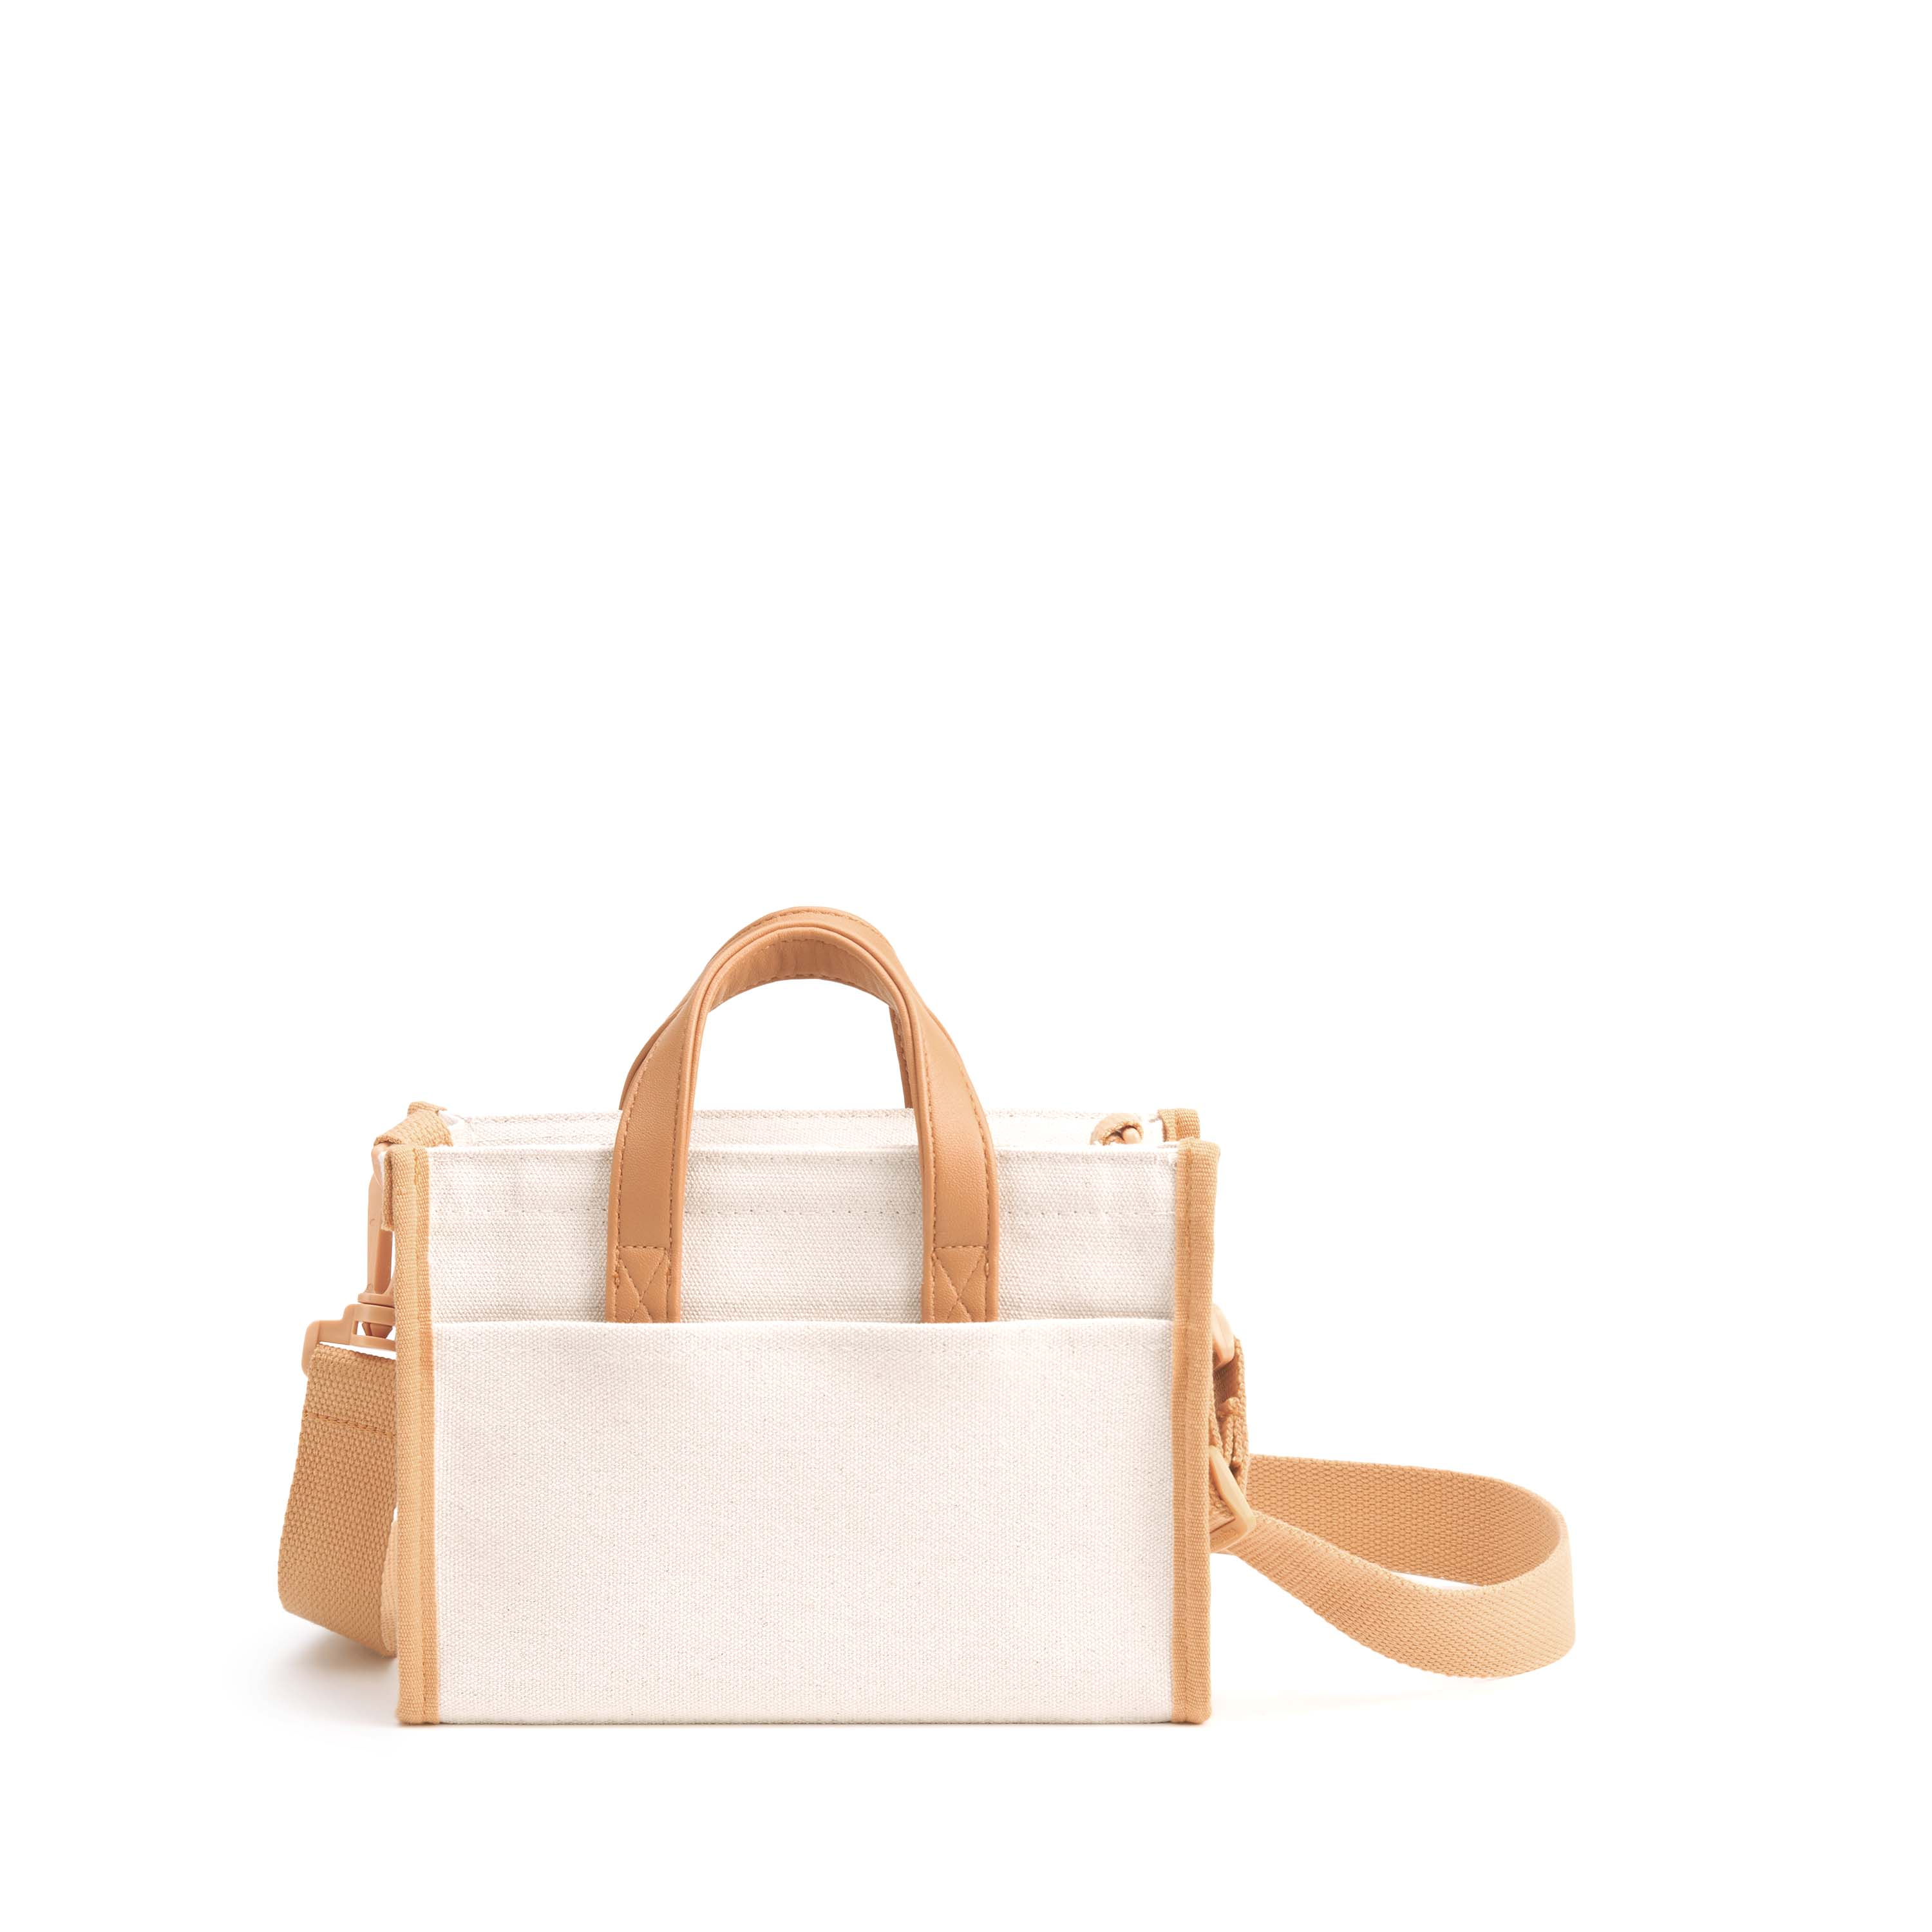 Estela 2 S - Beige/Nude Brown